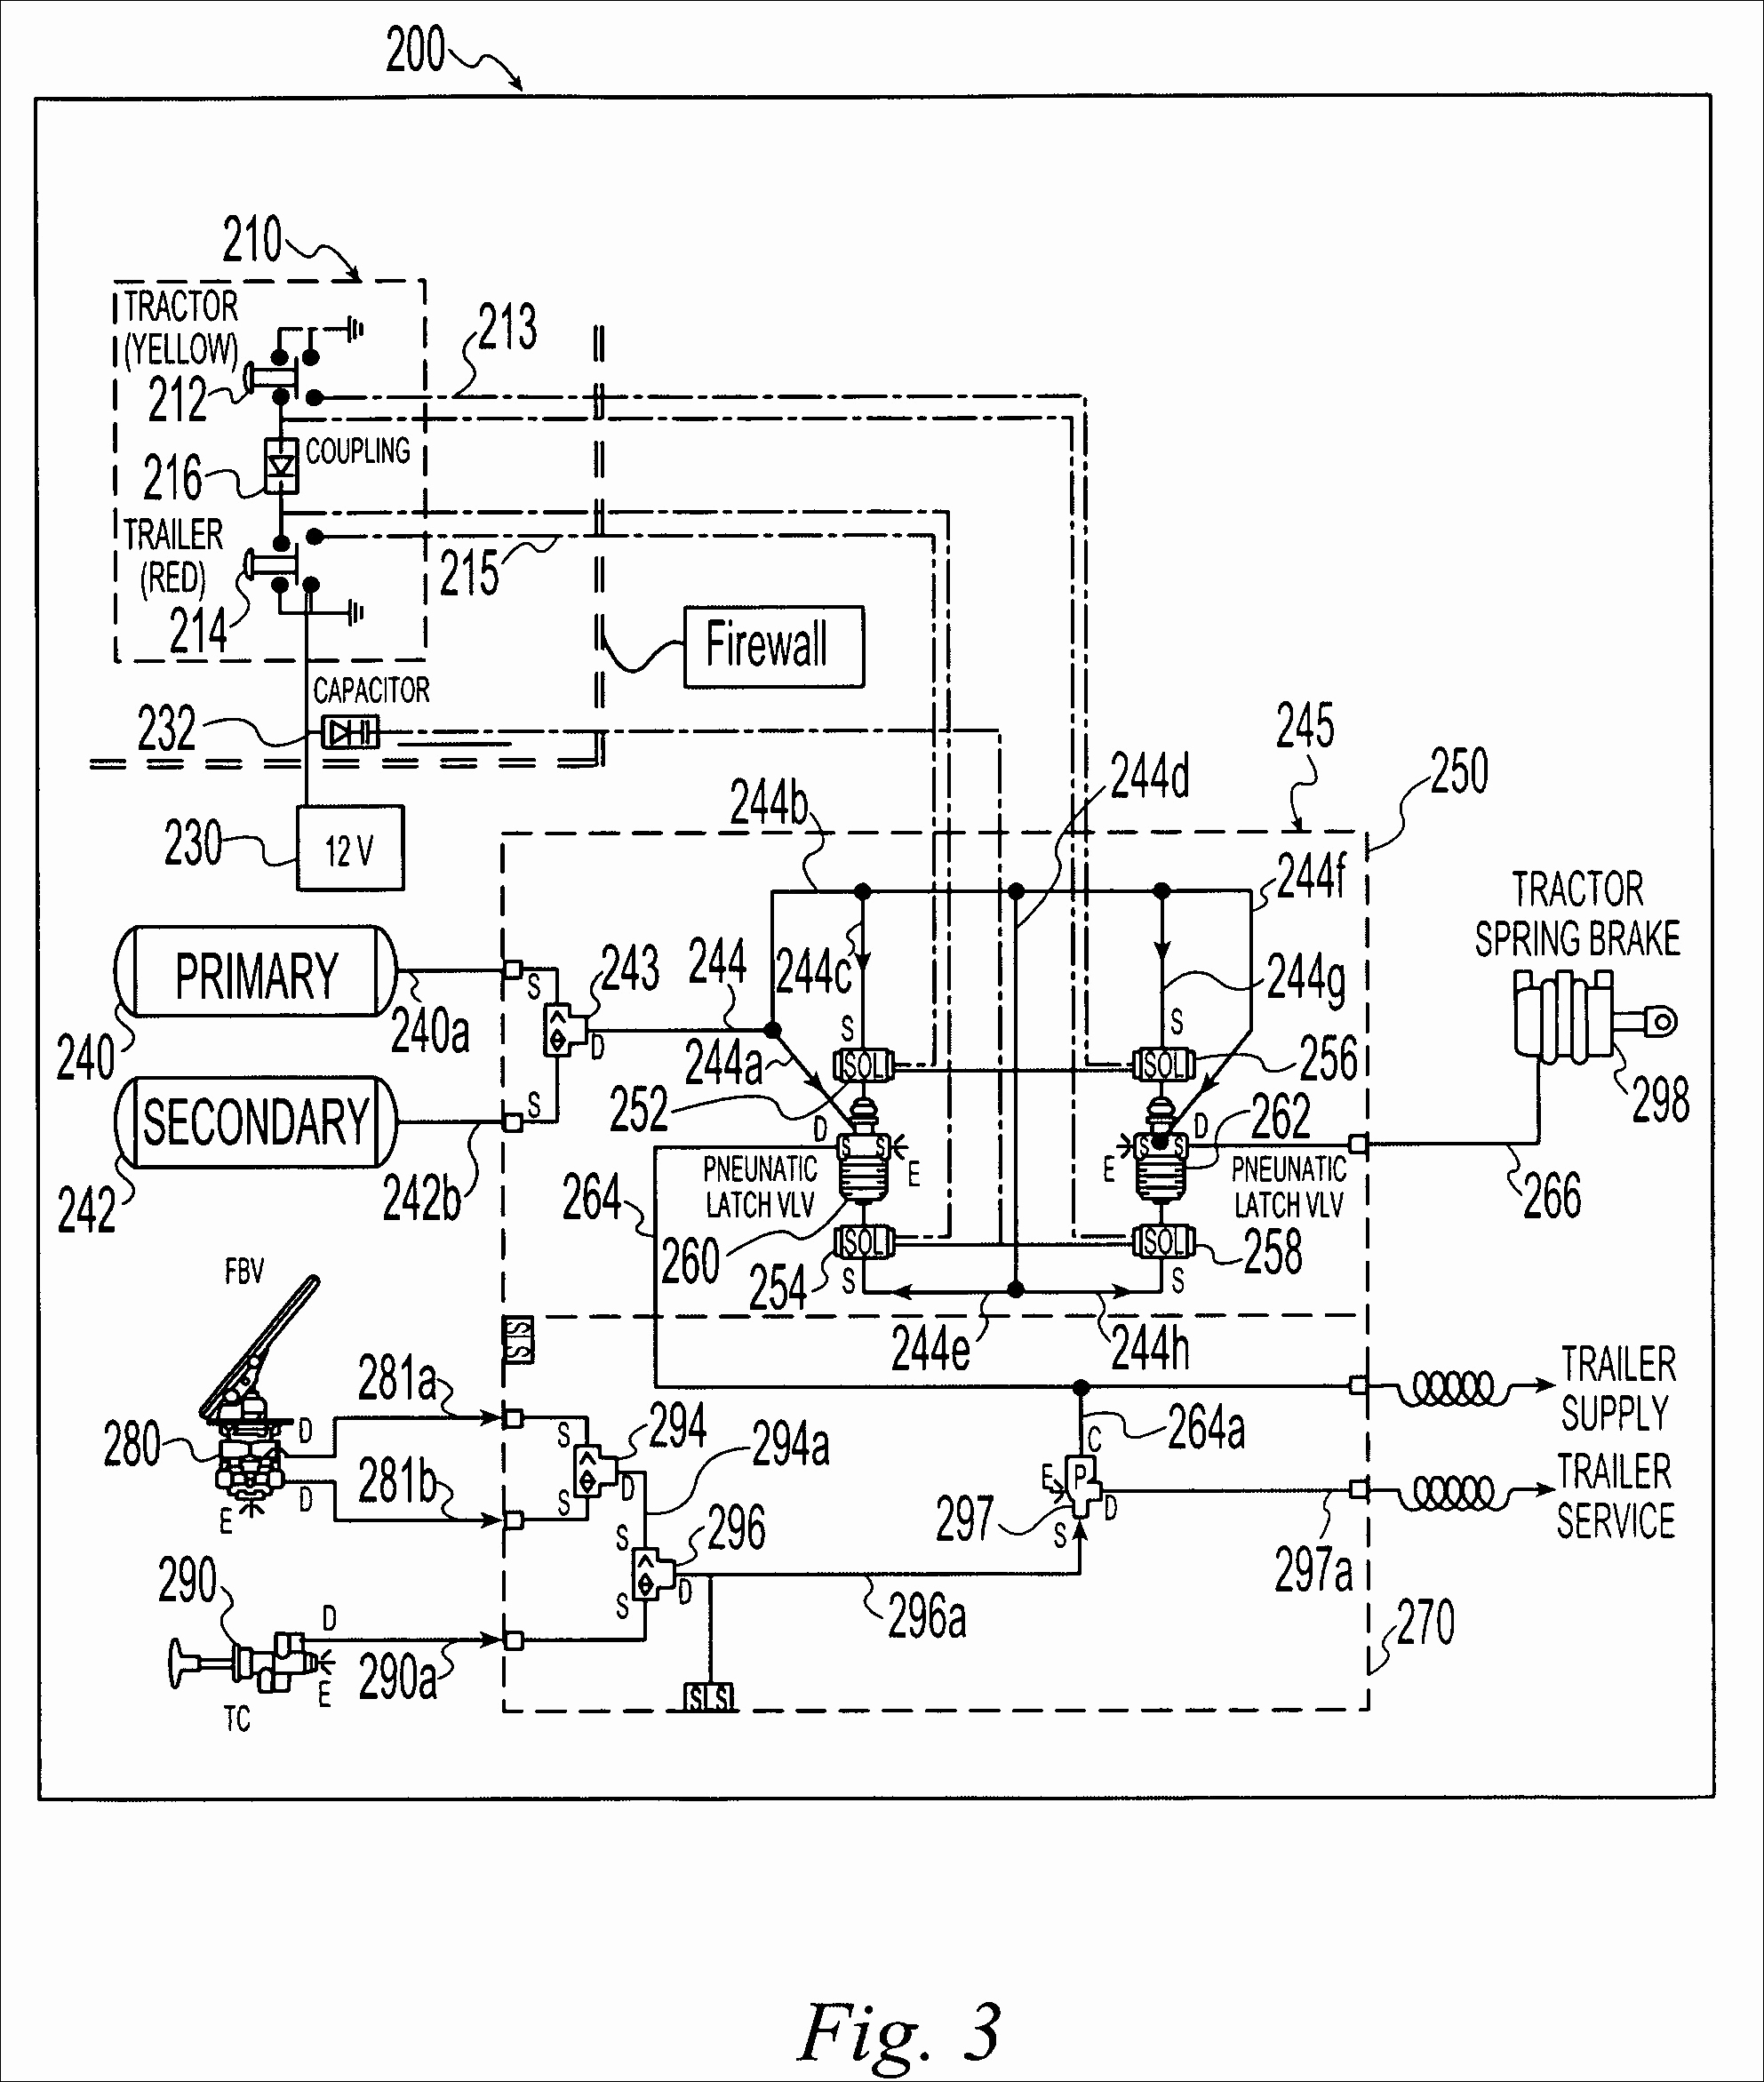 [DIAGRAM] 2001 Chevy Silverado Wiring Harness Diagram FULL